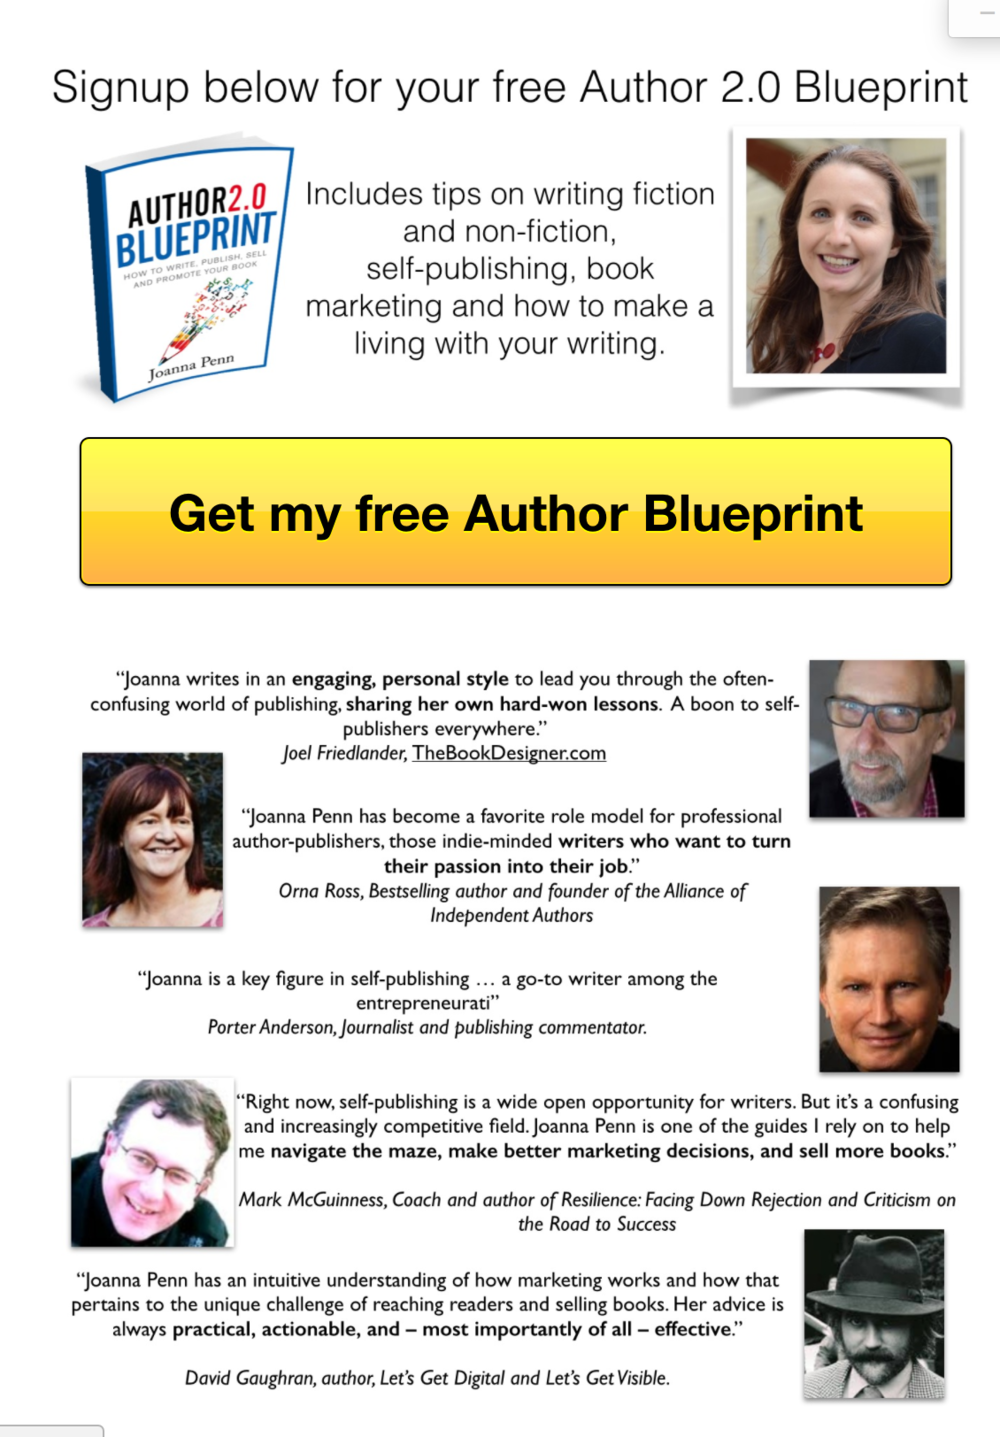 I'm not sure, maybe I should get my free Author Blueprint???